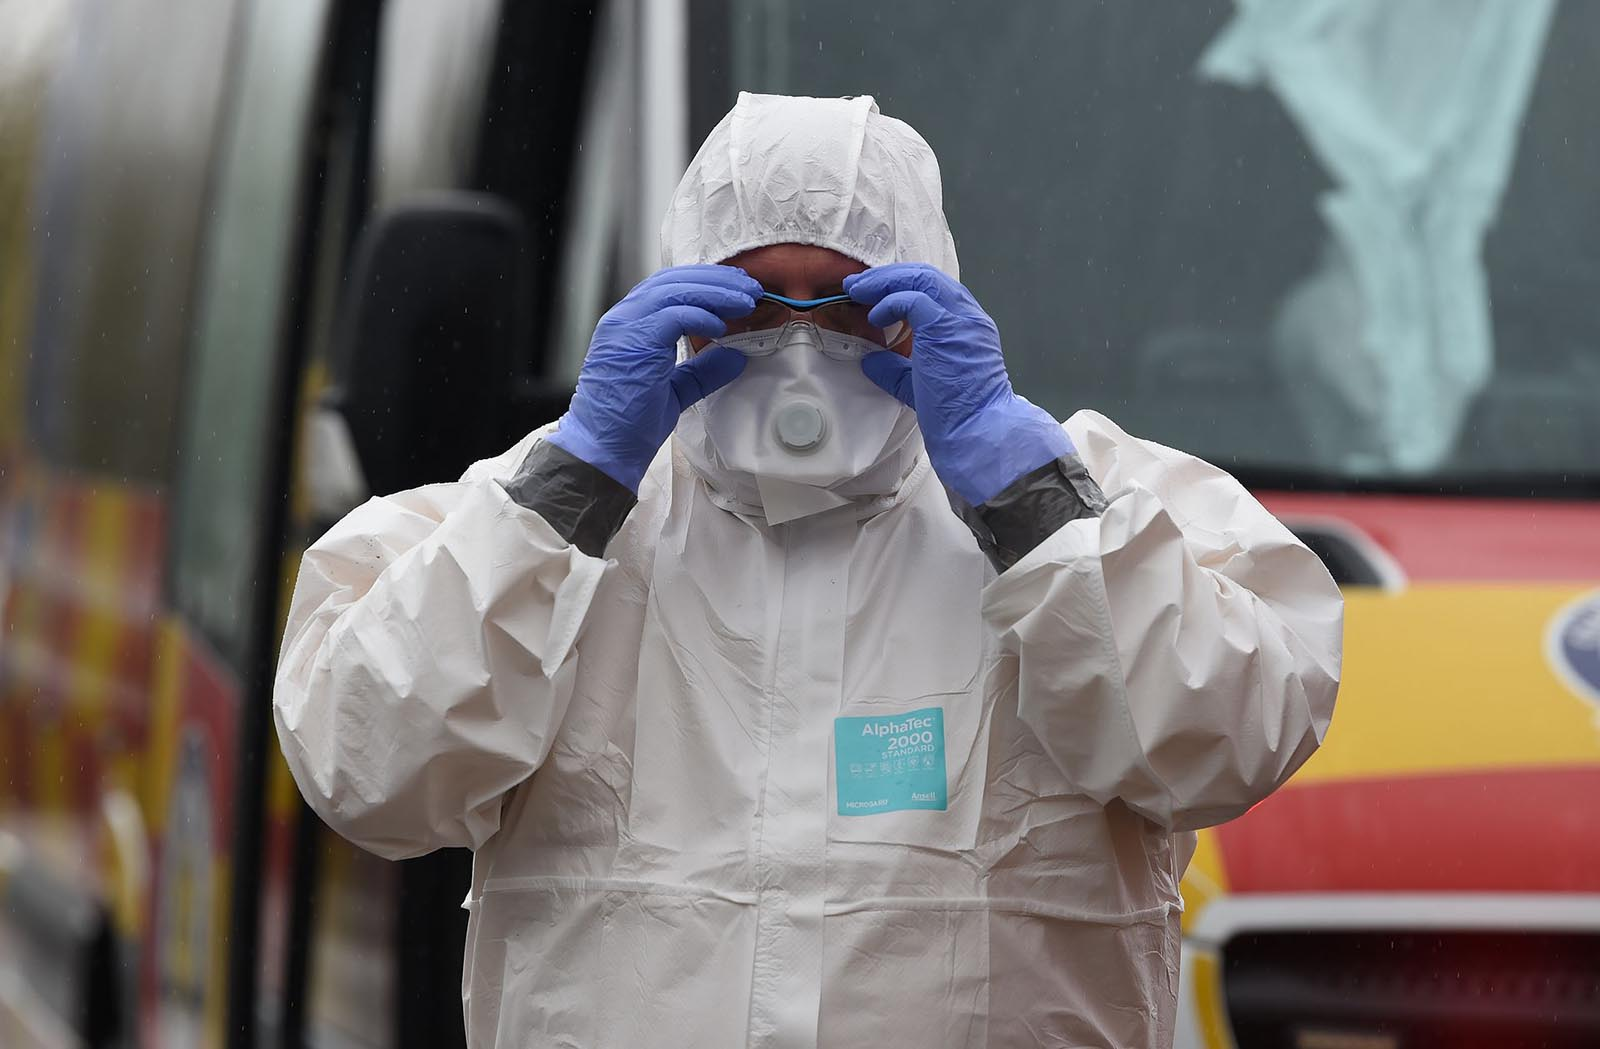 Spain Extends Stricter Coronavirus Lockdown As Death Toll Continues To Rise